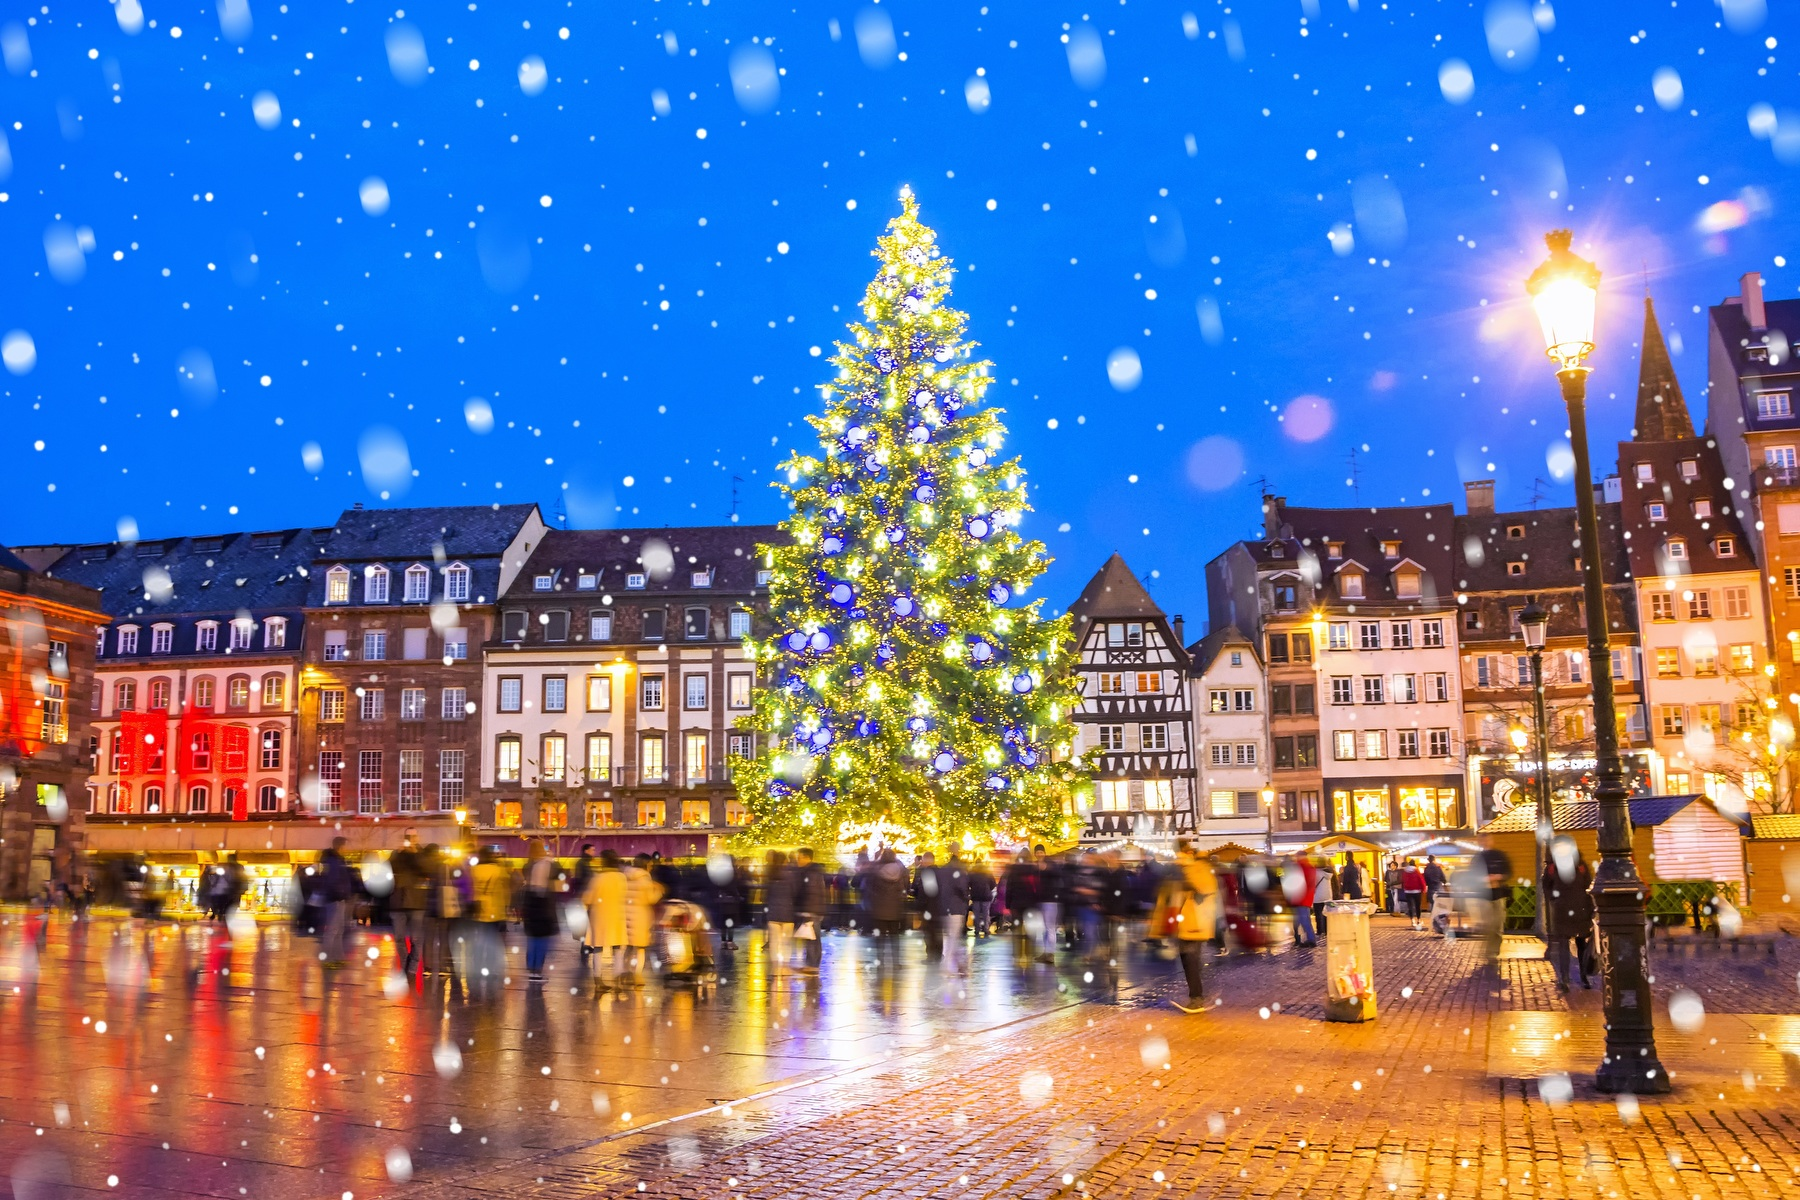 European Christmas Markets - Strasbourg, France